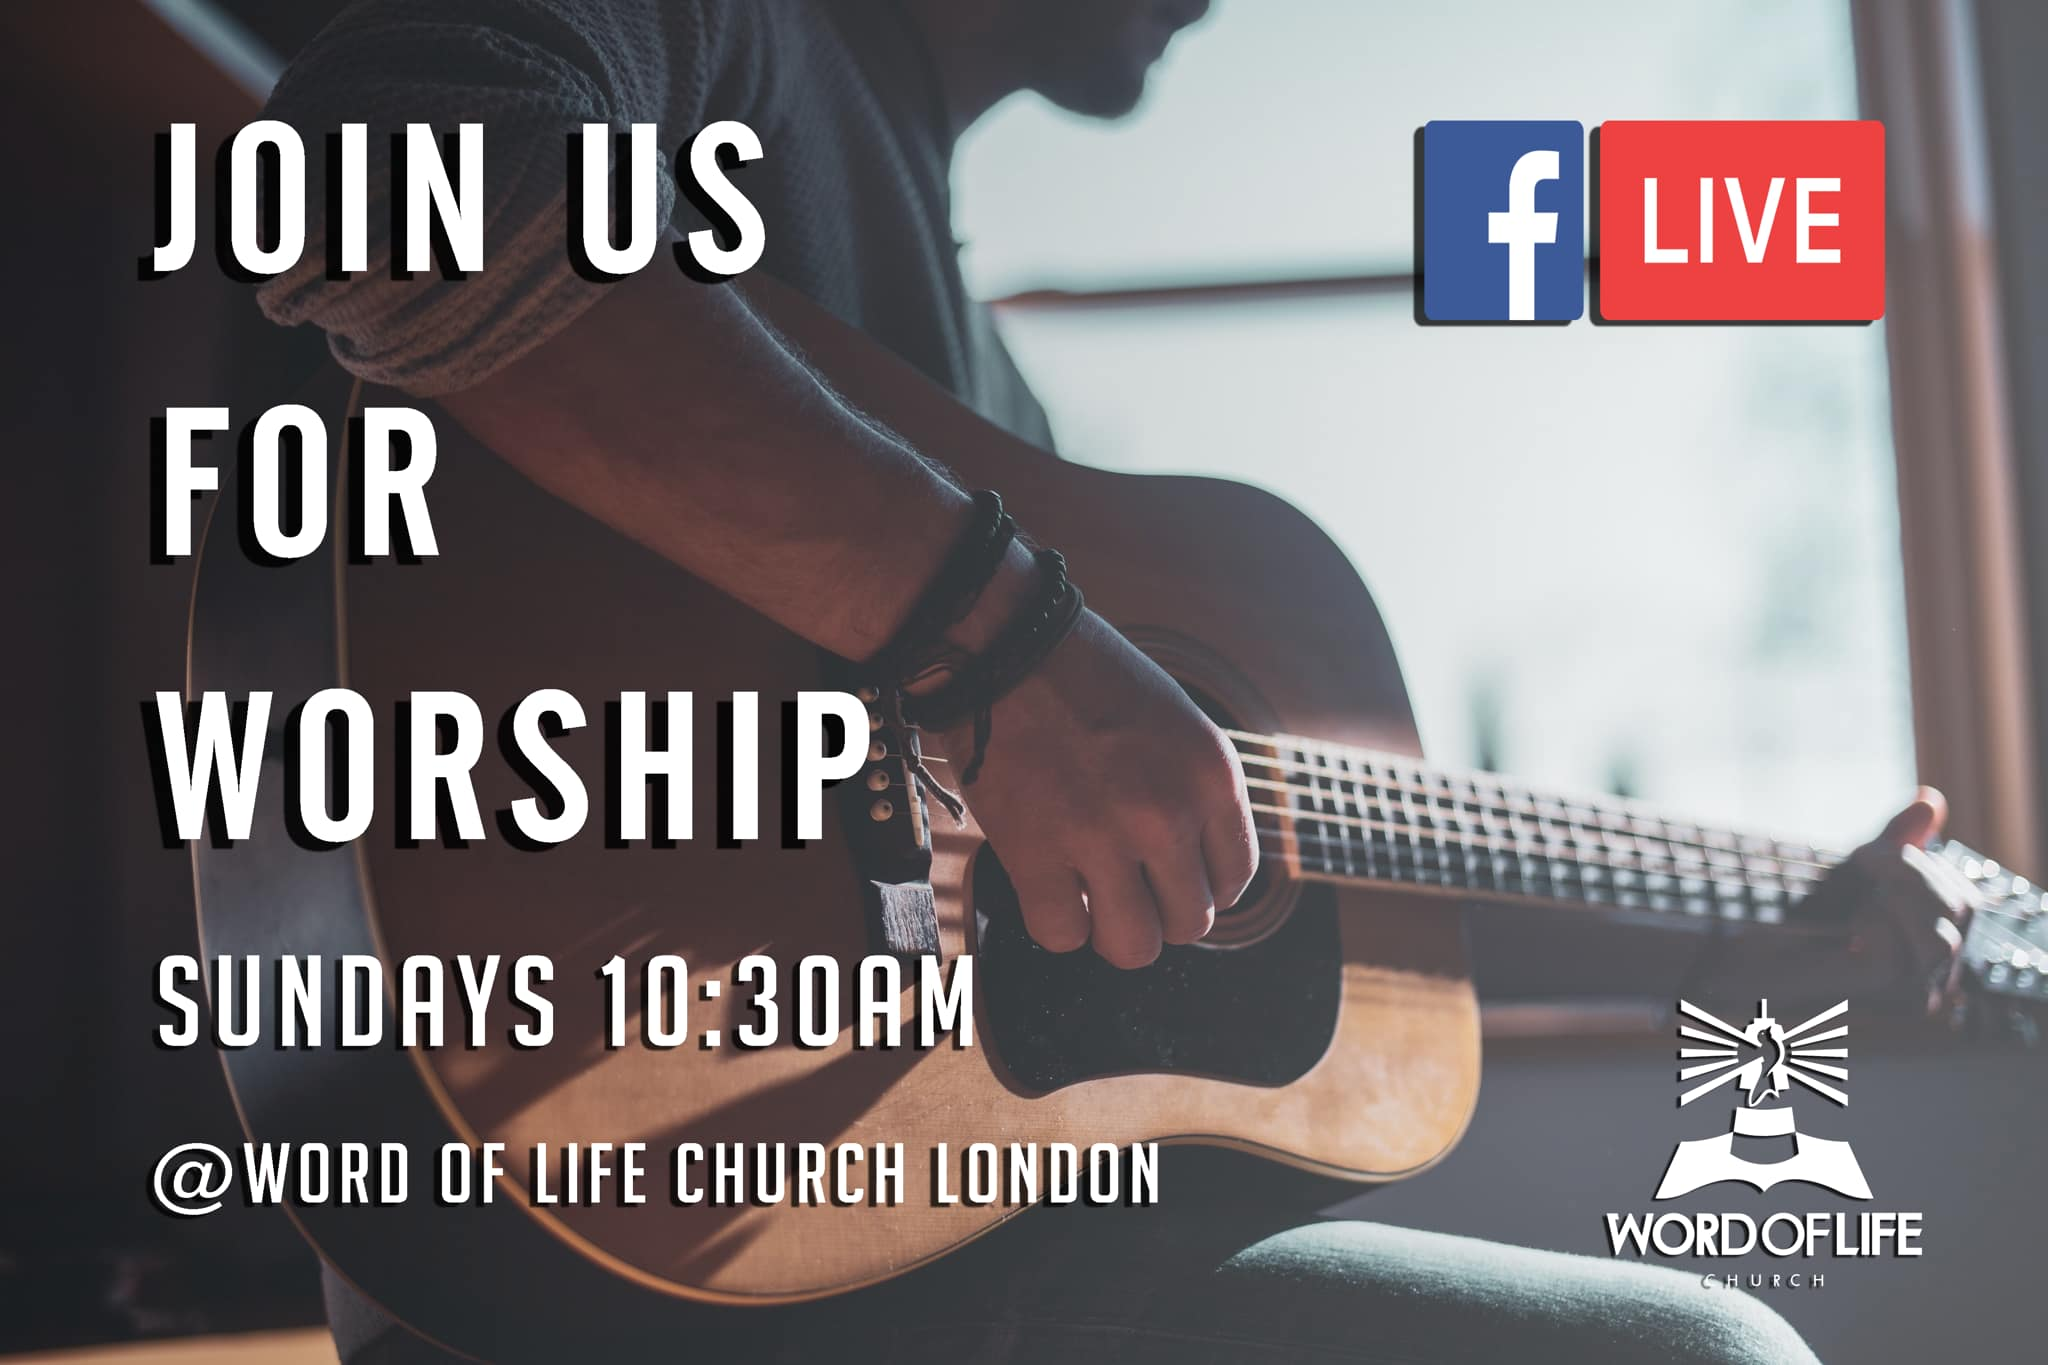 Word of Life Church London - Facebook Live Sunday Worship